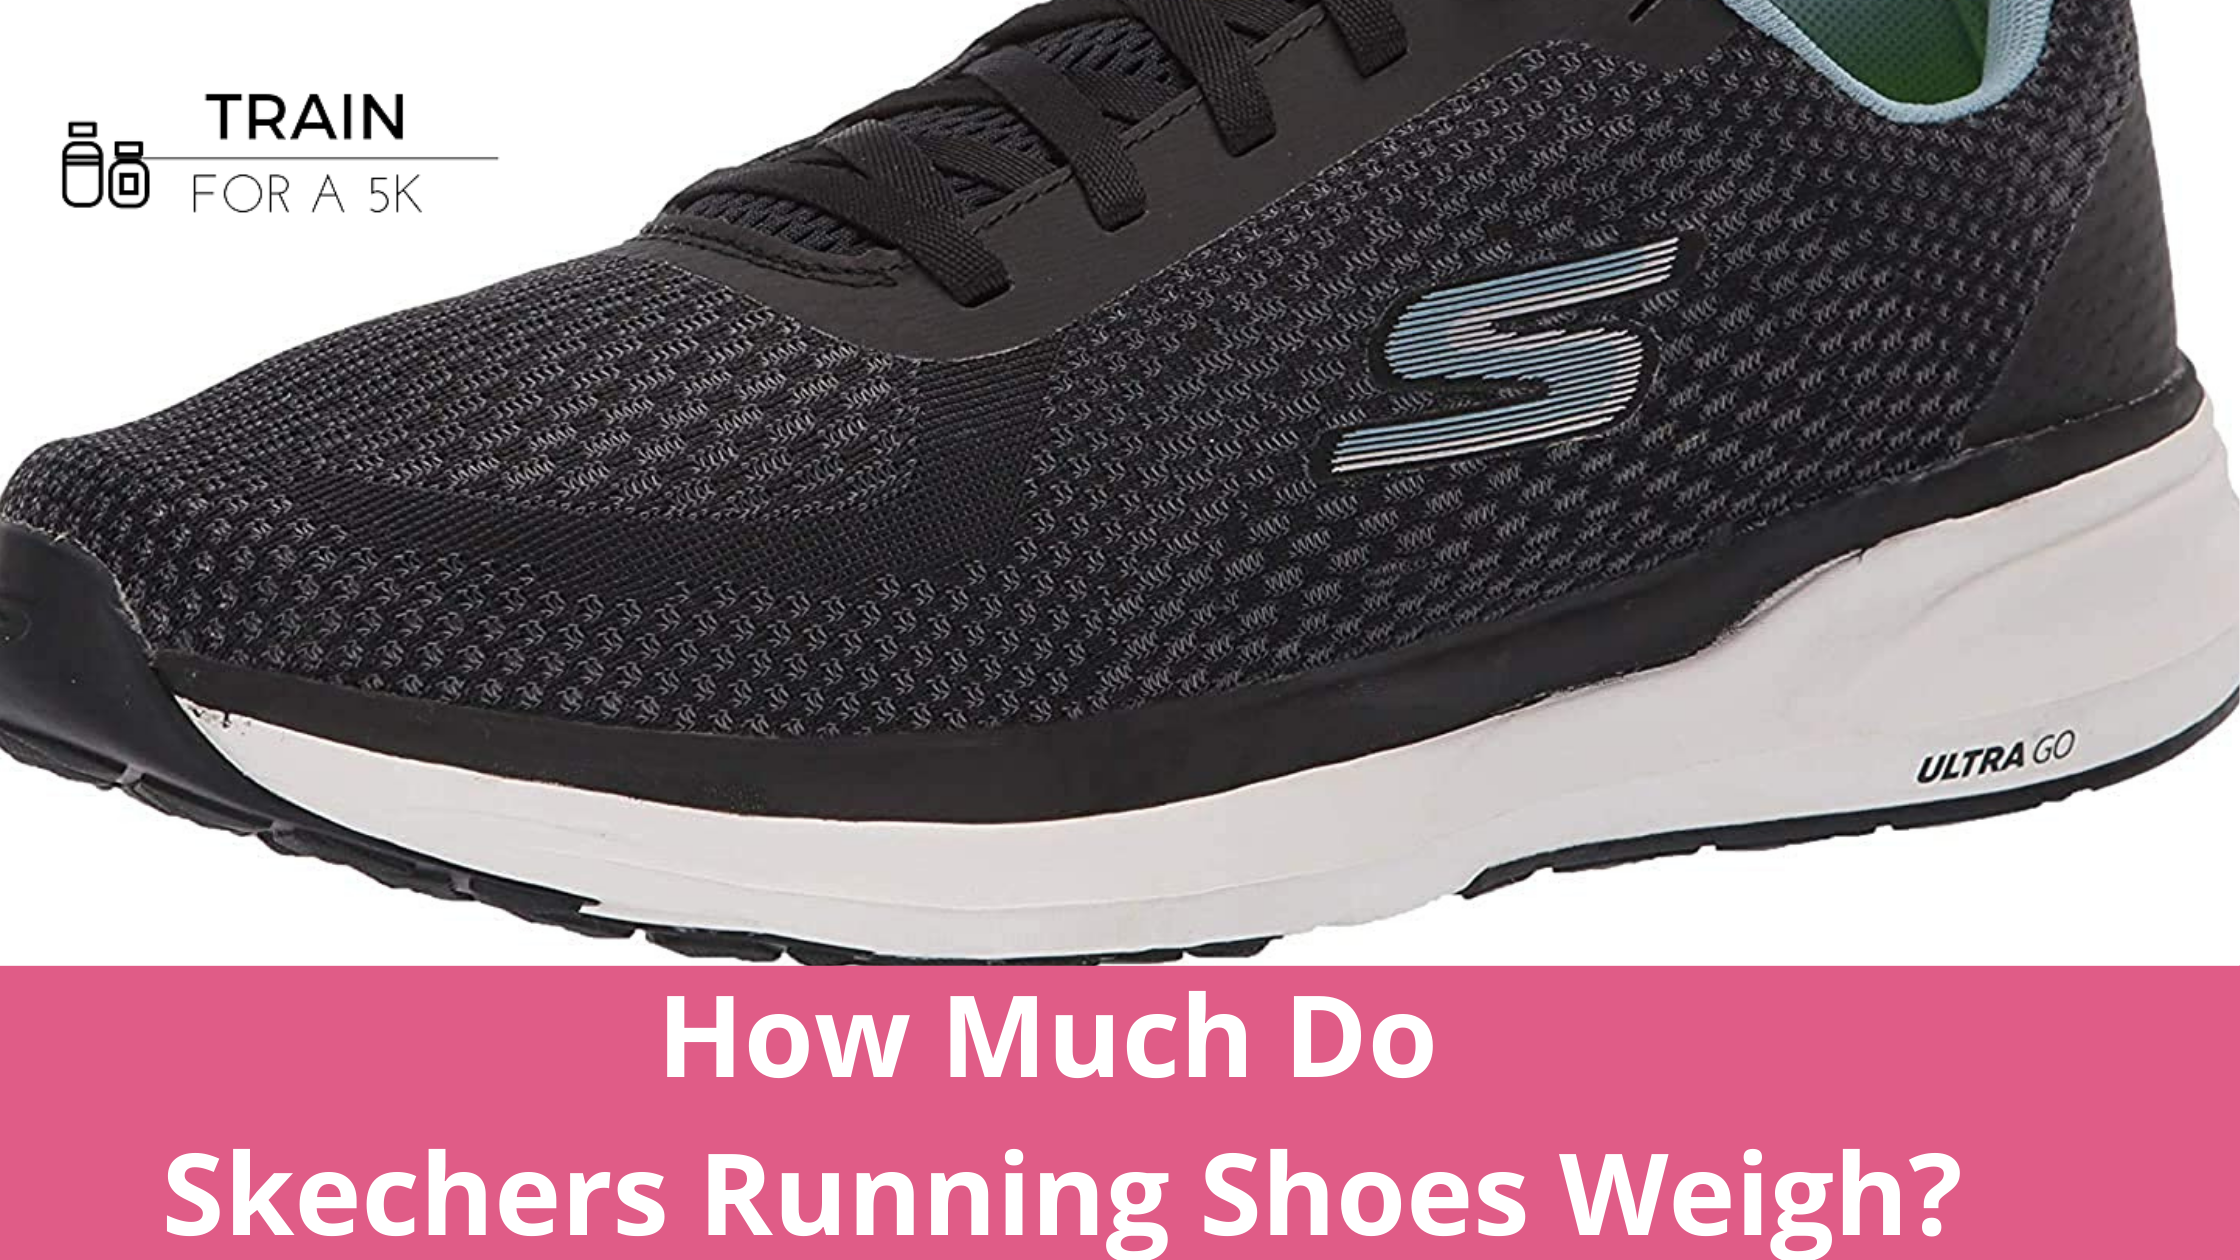 The average weight of a Sketchers running shoe is 7.2 ounces in men's and 6.3 ounces in women's. The heaviest Sketchers running shoe is the GOrun Ride and the lightest is the GOrun Razor 3 Elite Hyper.